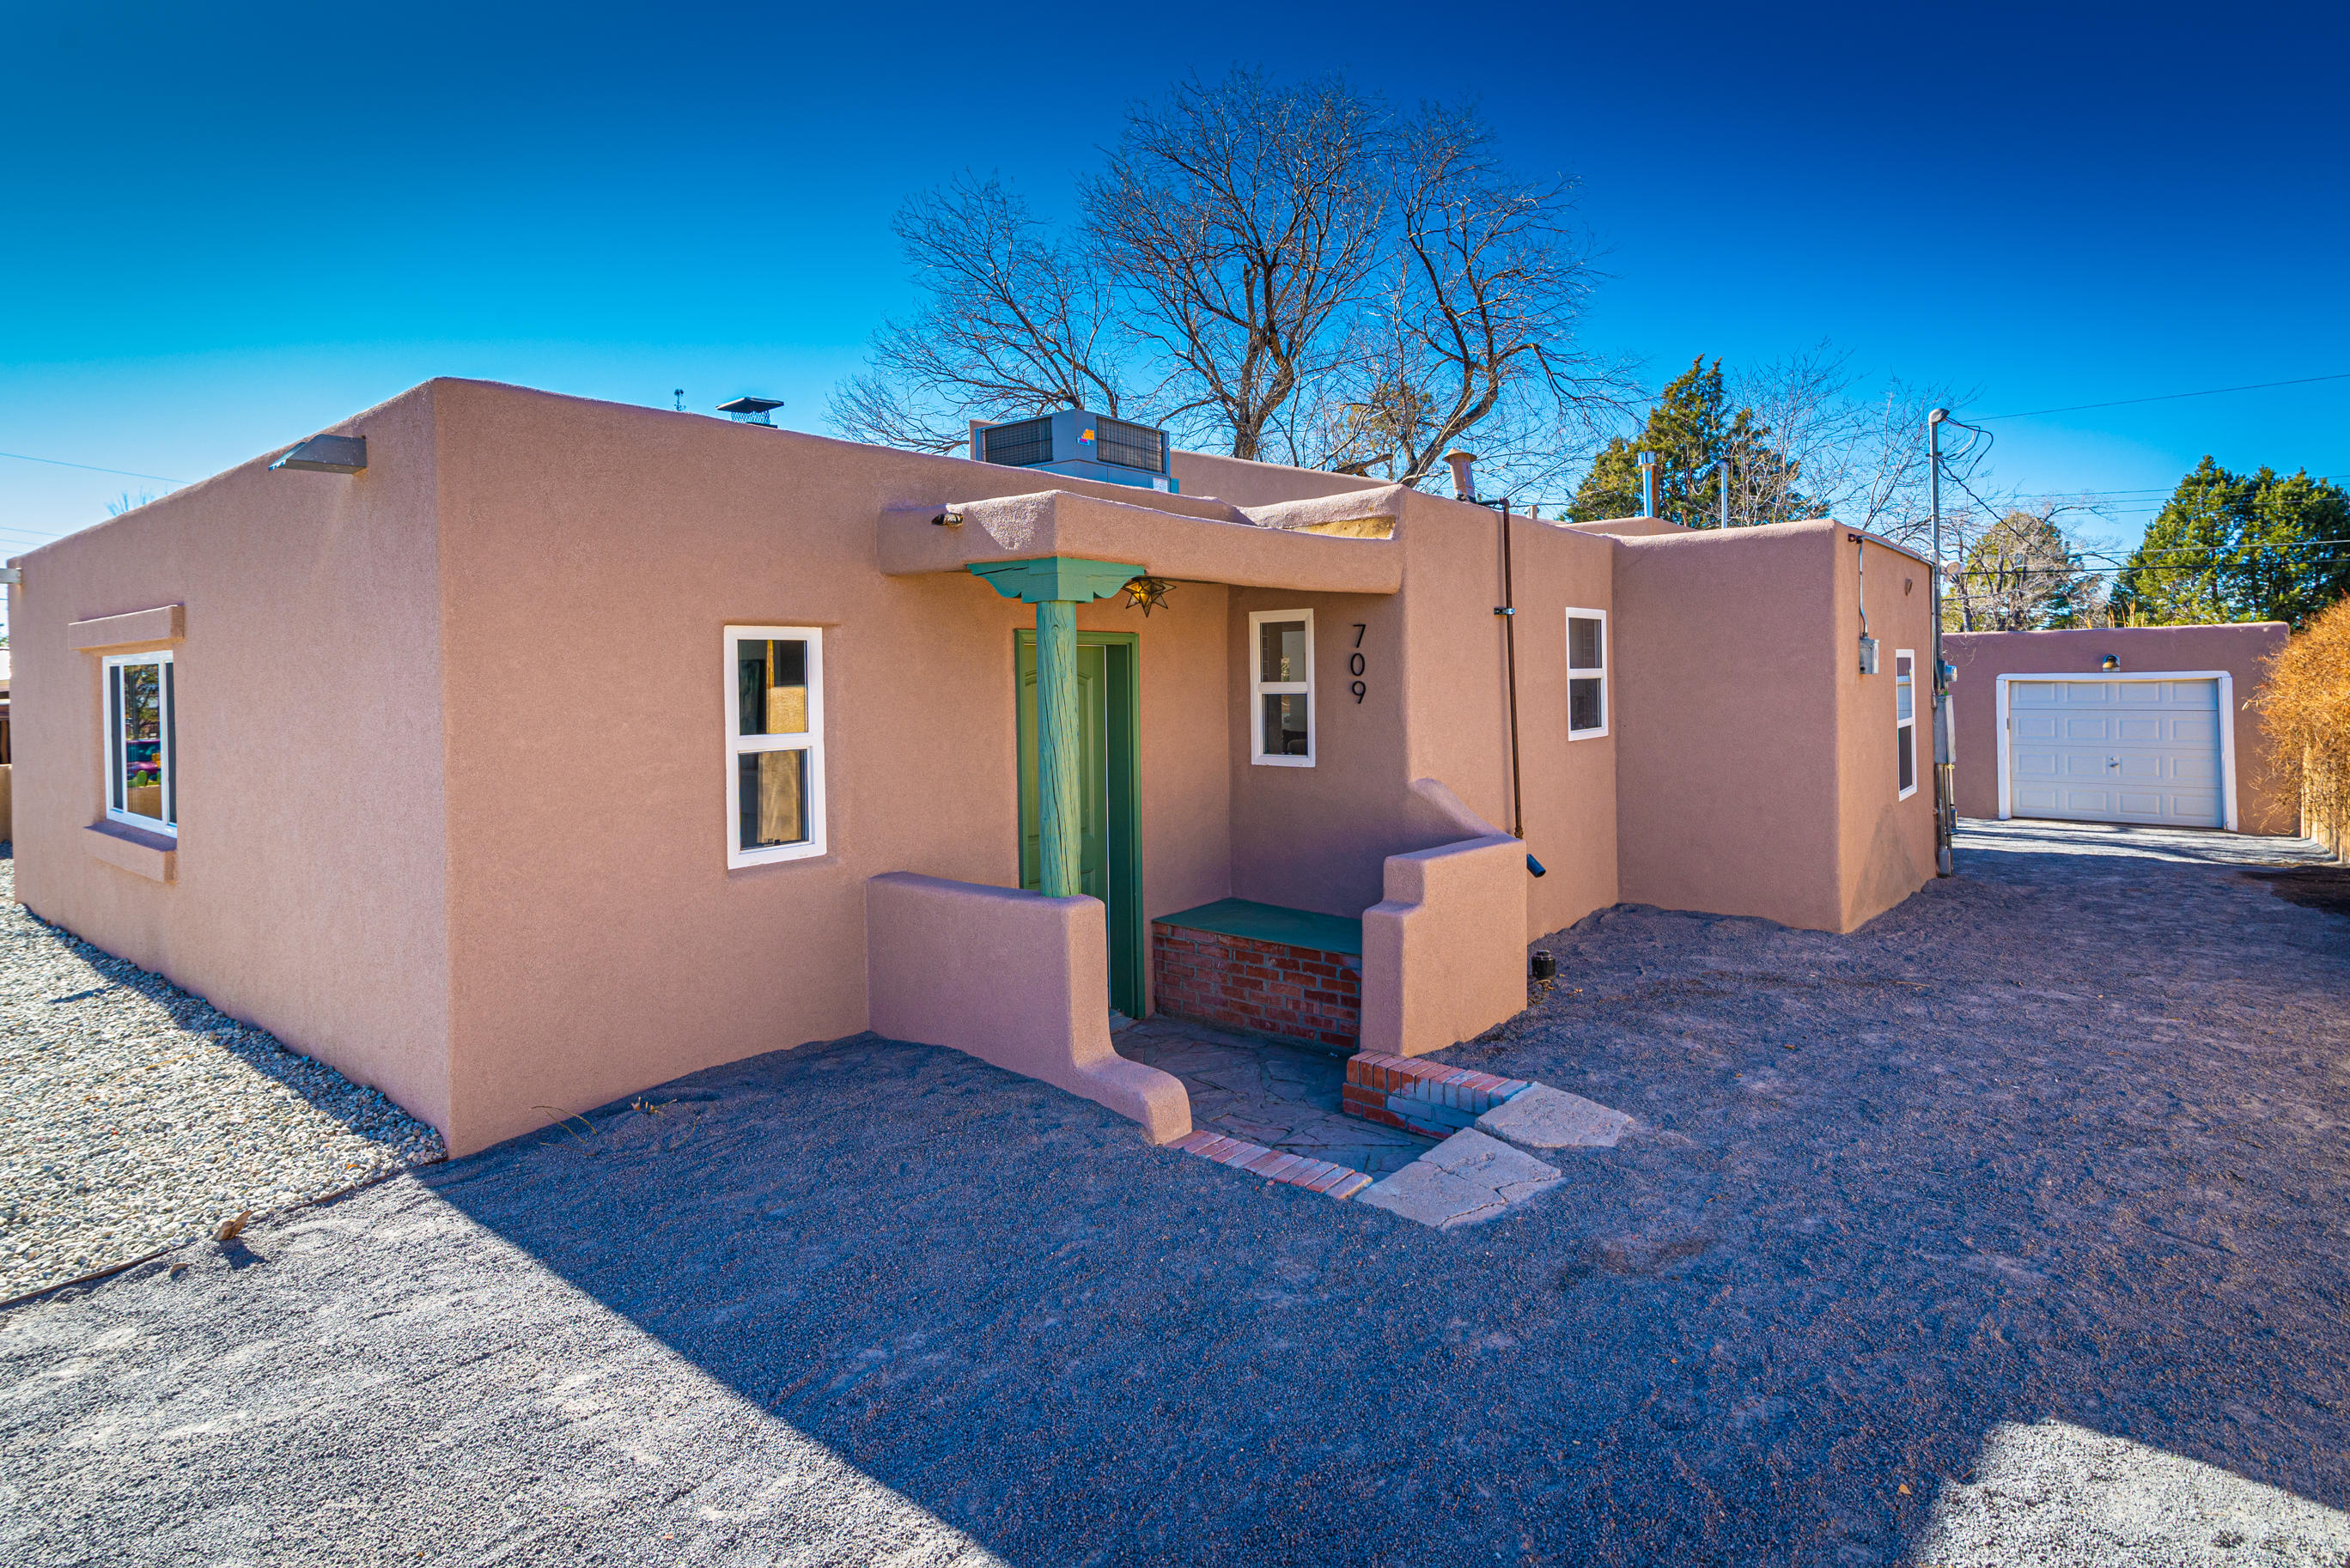 Welcome Home!! Beautifully updated home in the heart of Albuquerque!! Gorgeous living room with a high ceiling!! Kitchen is equipped with quartz countertops with stainless steel appliances!! HUGE lot!! New Stucco and refrigerated air!! Schedule your appointment to see this home today!!